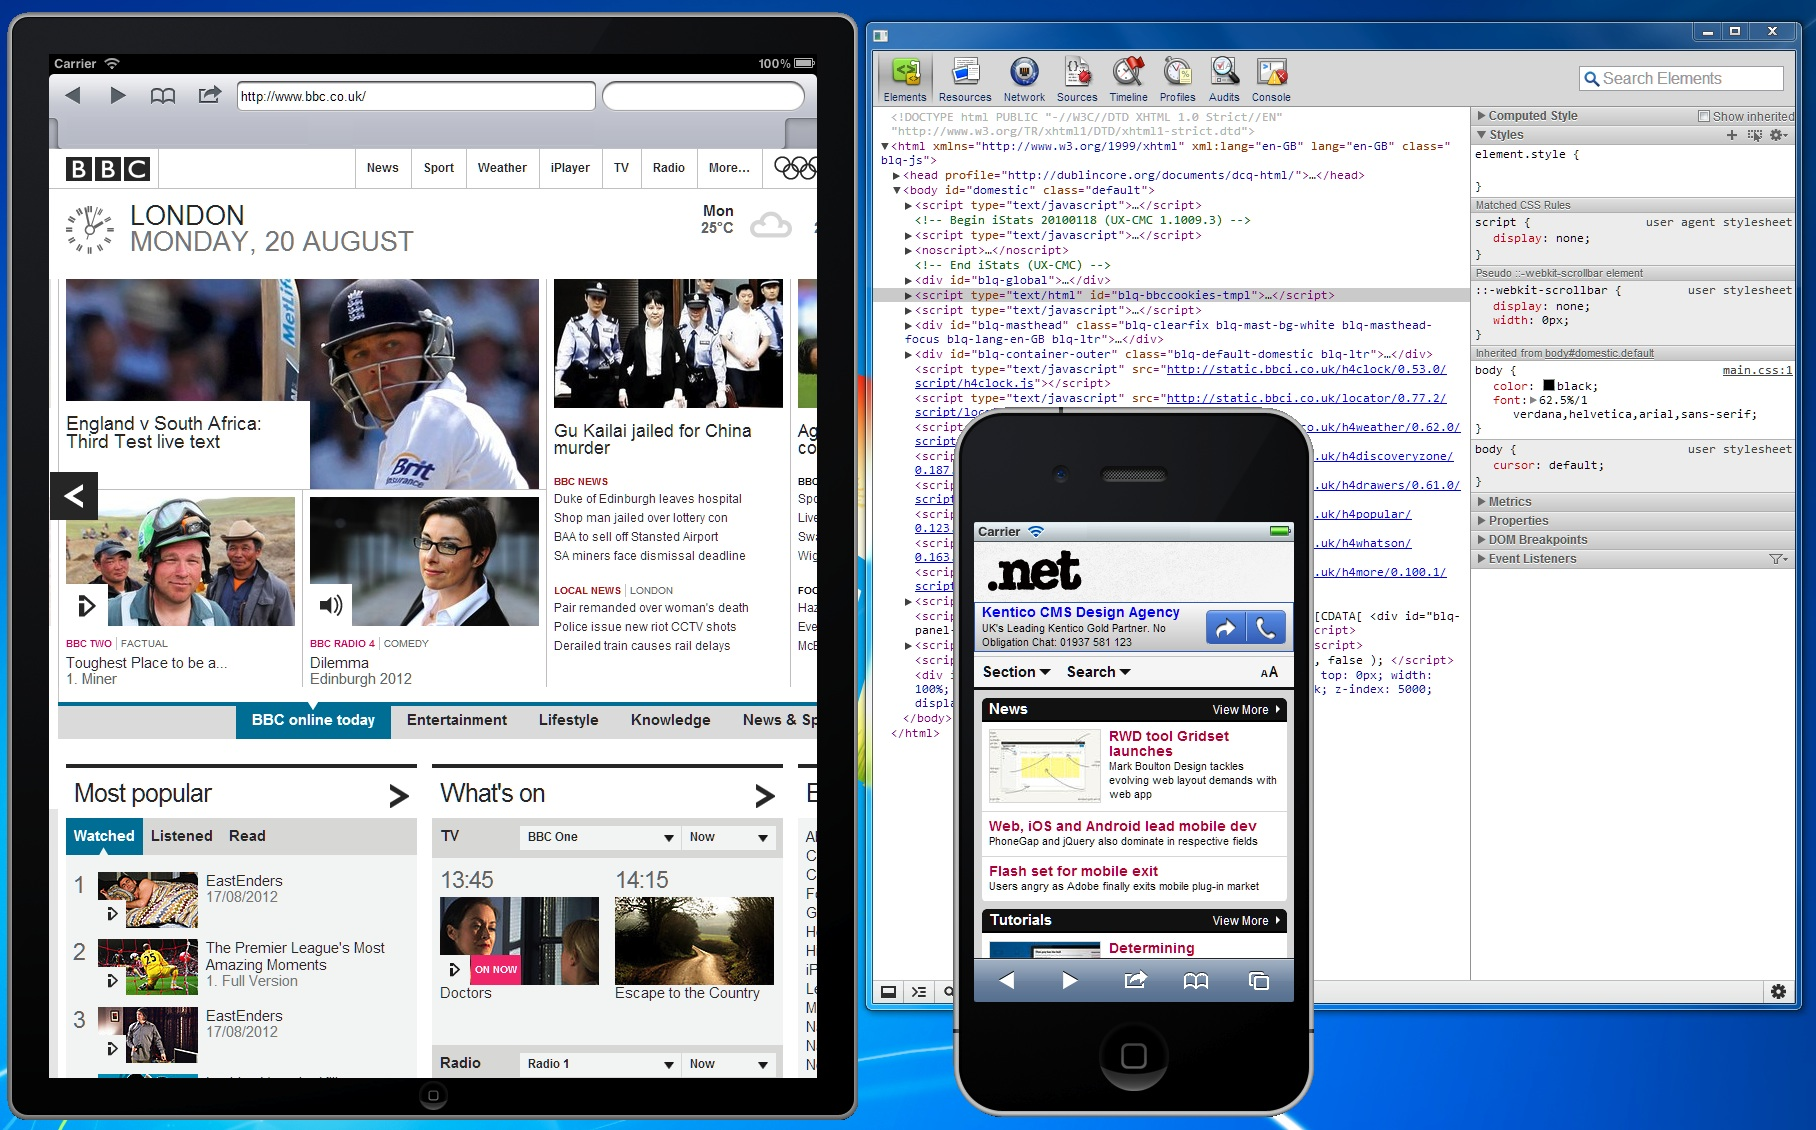 Windows-friendly iOS development, profiling and testing